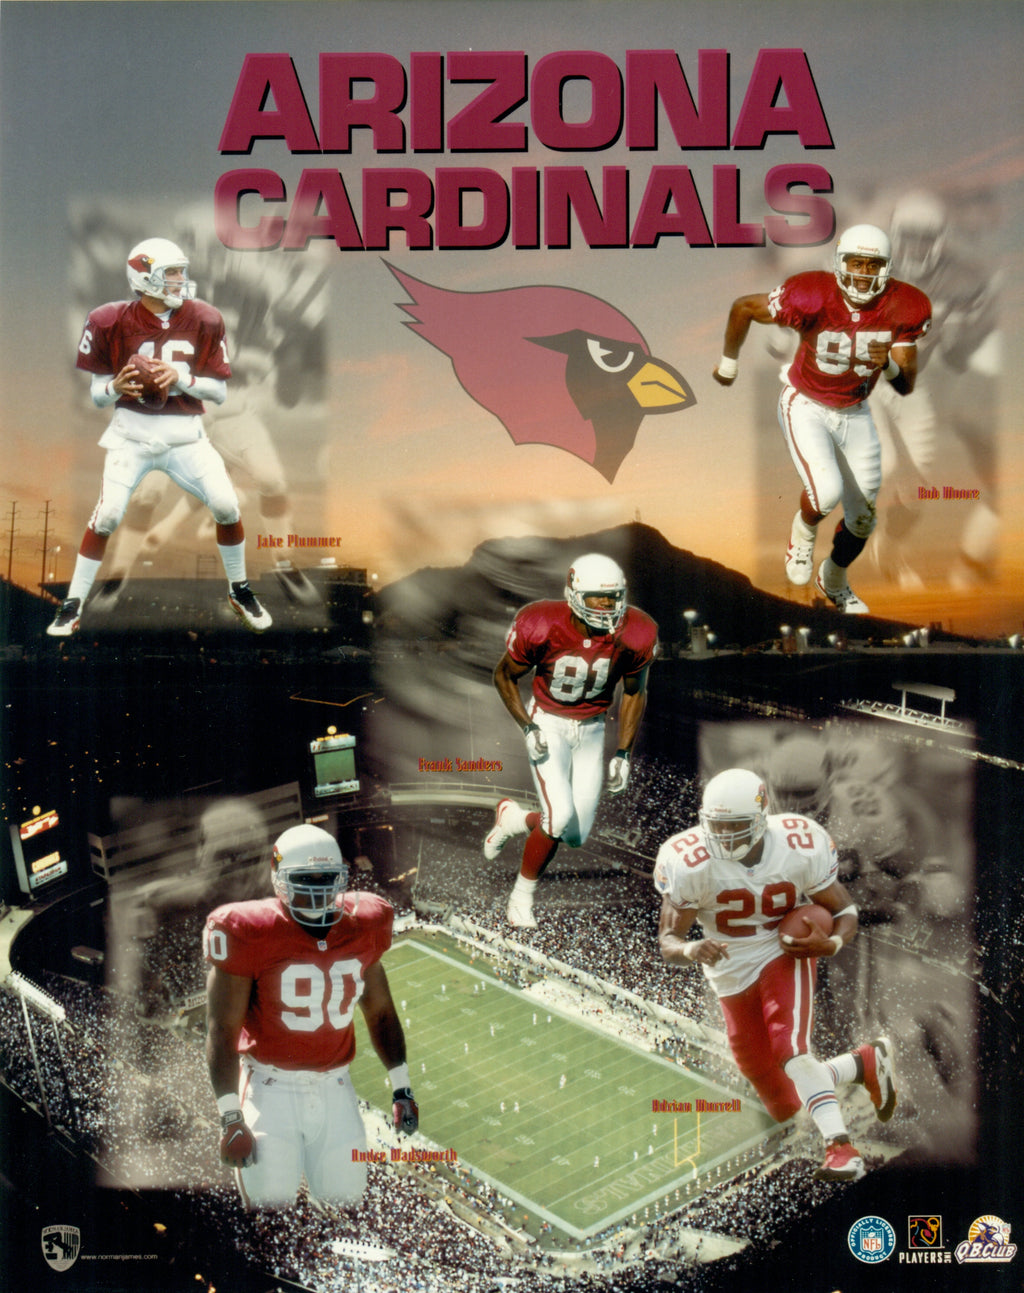 Arizona Cardinals 8x10 Photograph